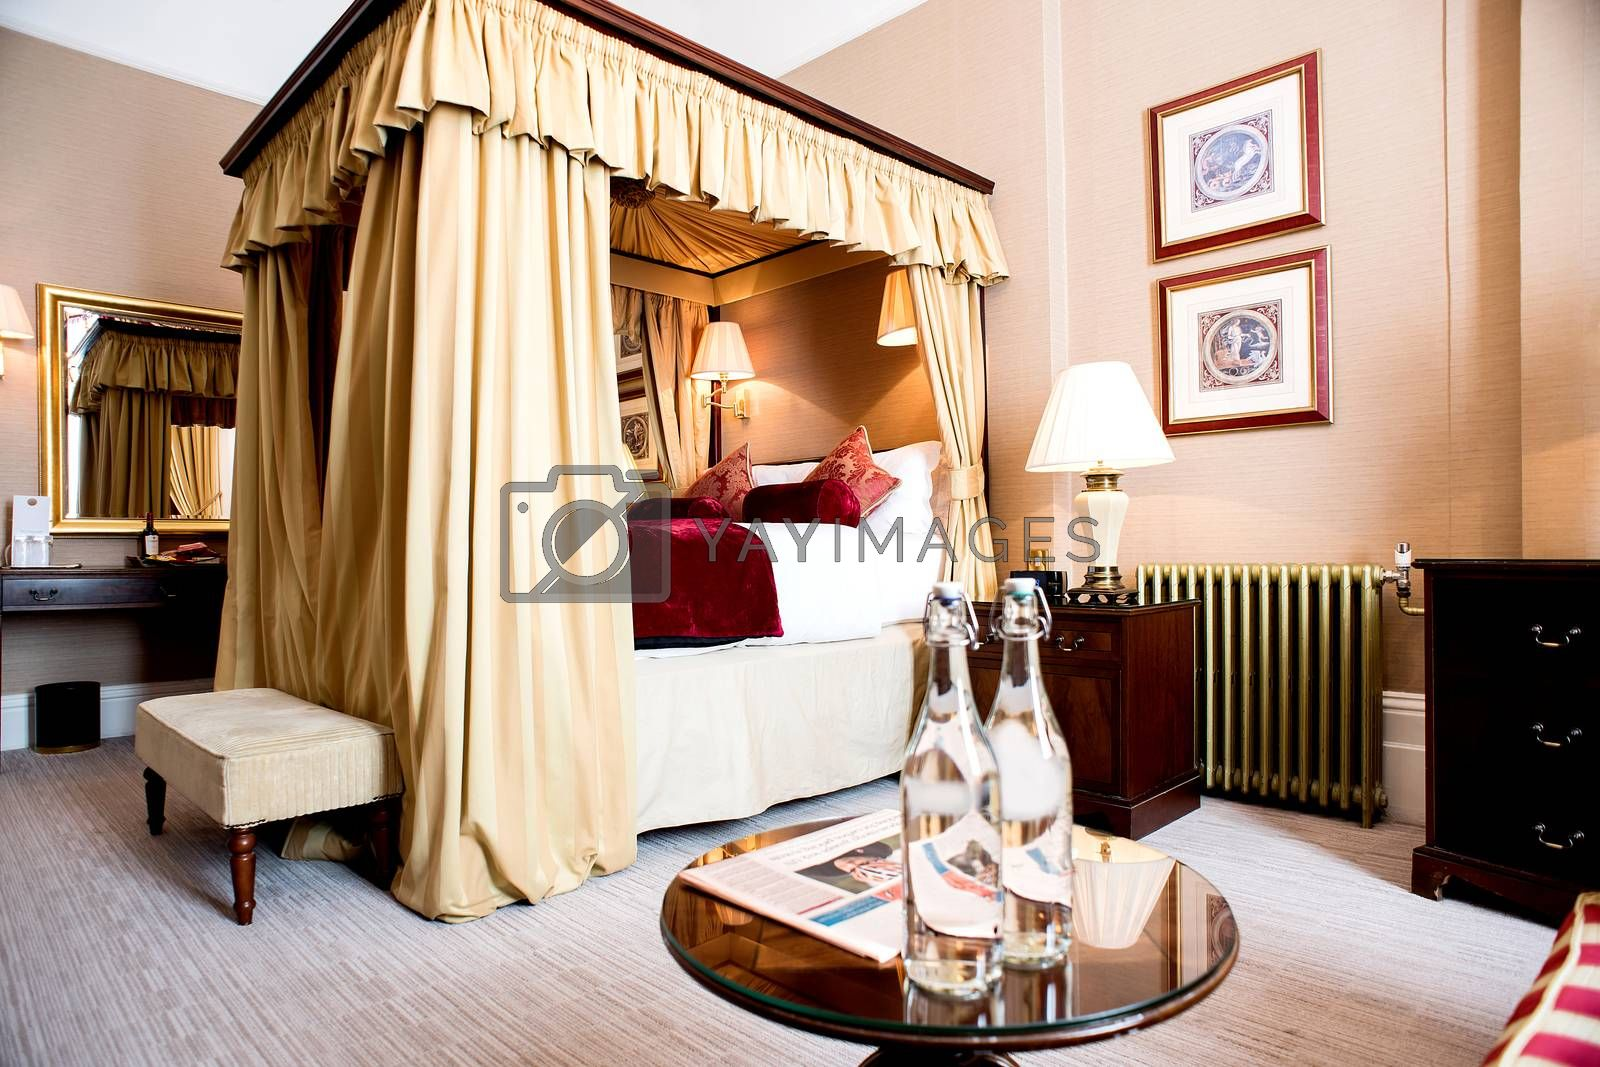 Interior of a classic style bedroom in hotel